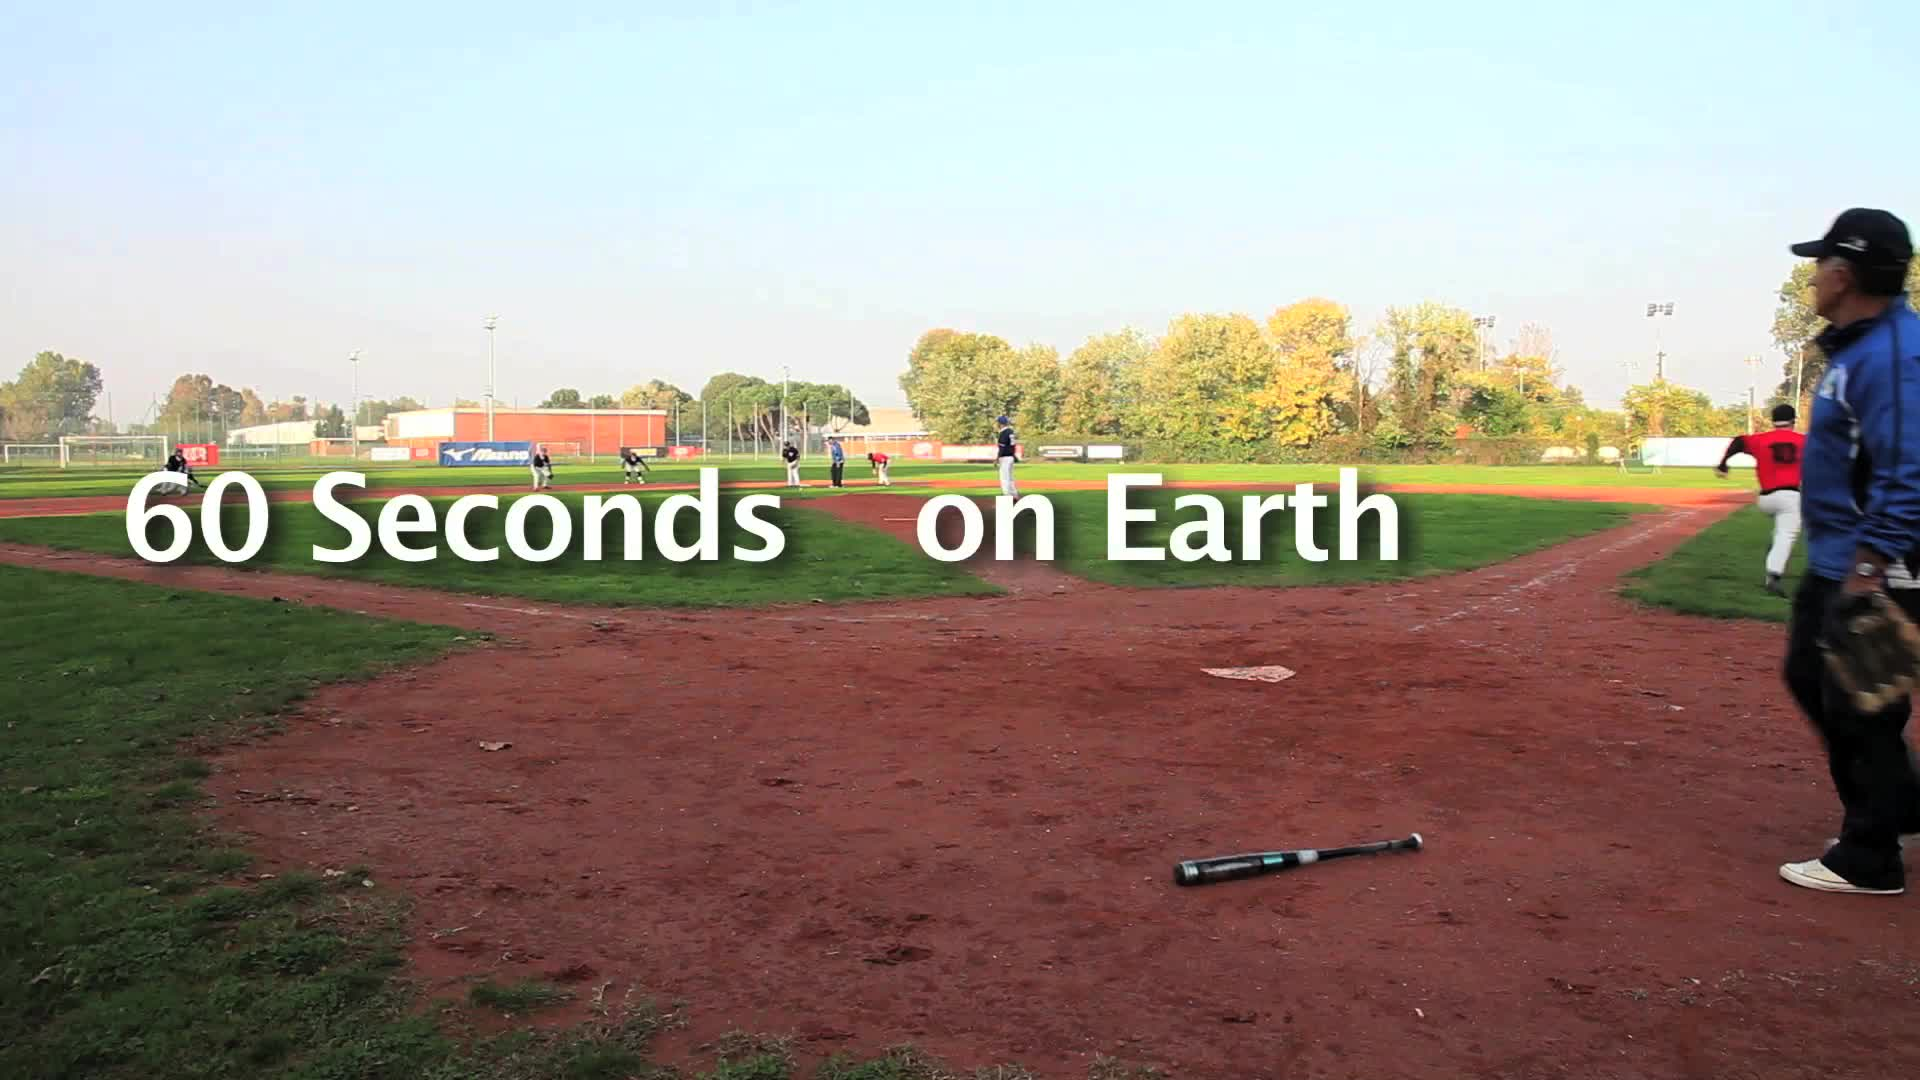 Honoree - 60 Seconds on Earth